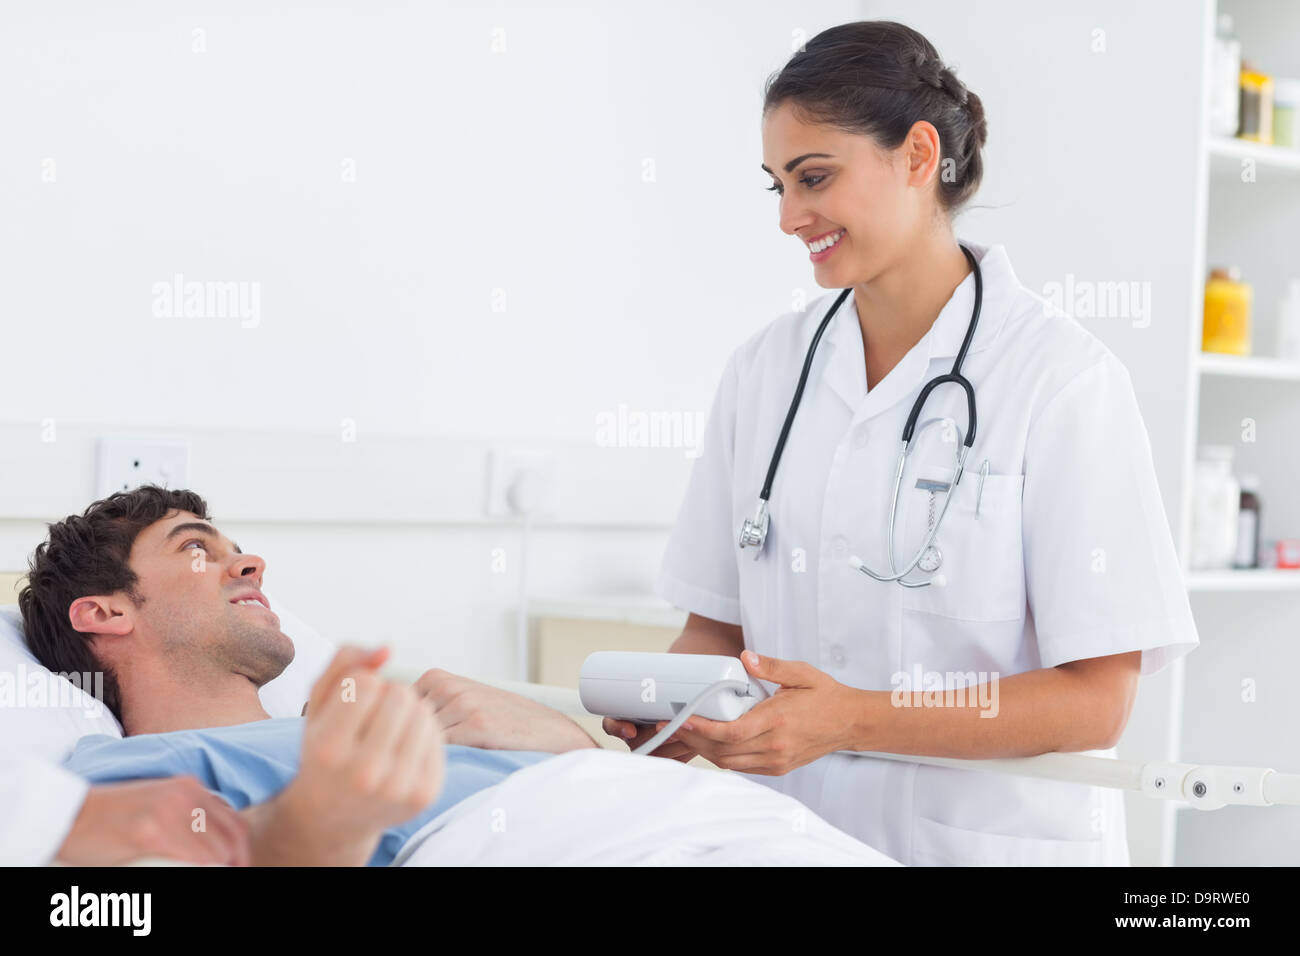 Attractive doctor taking the blood pressure of a patient - Stock Image